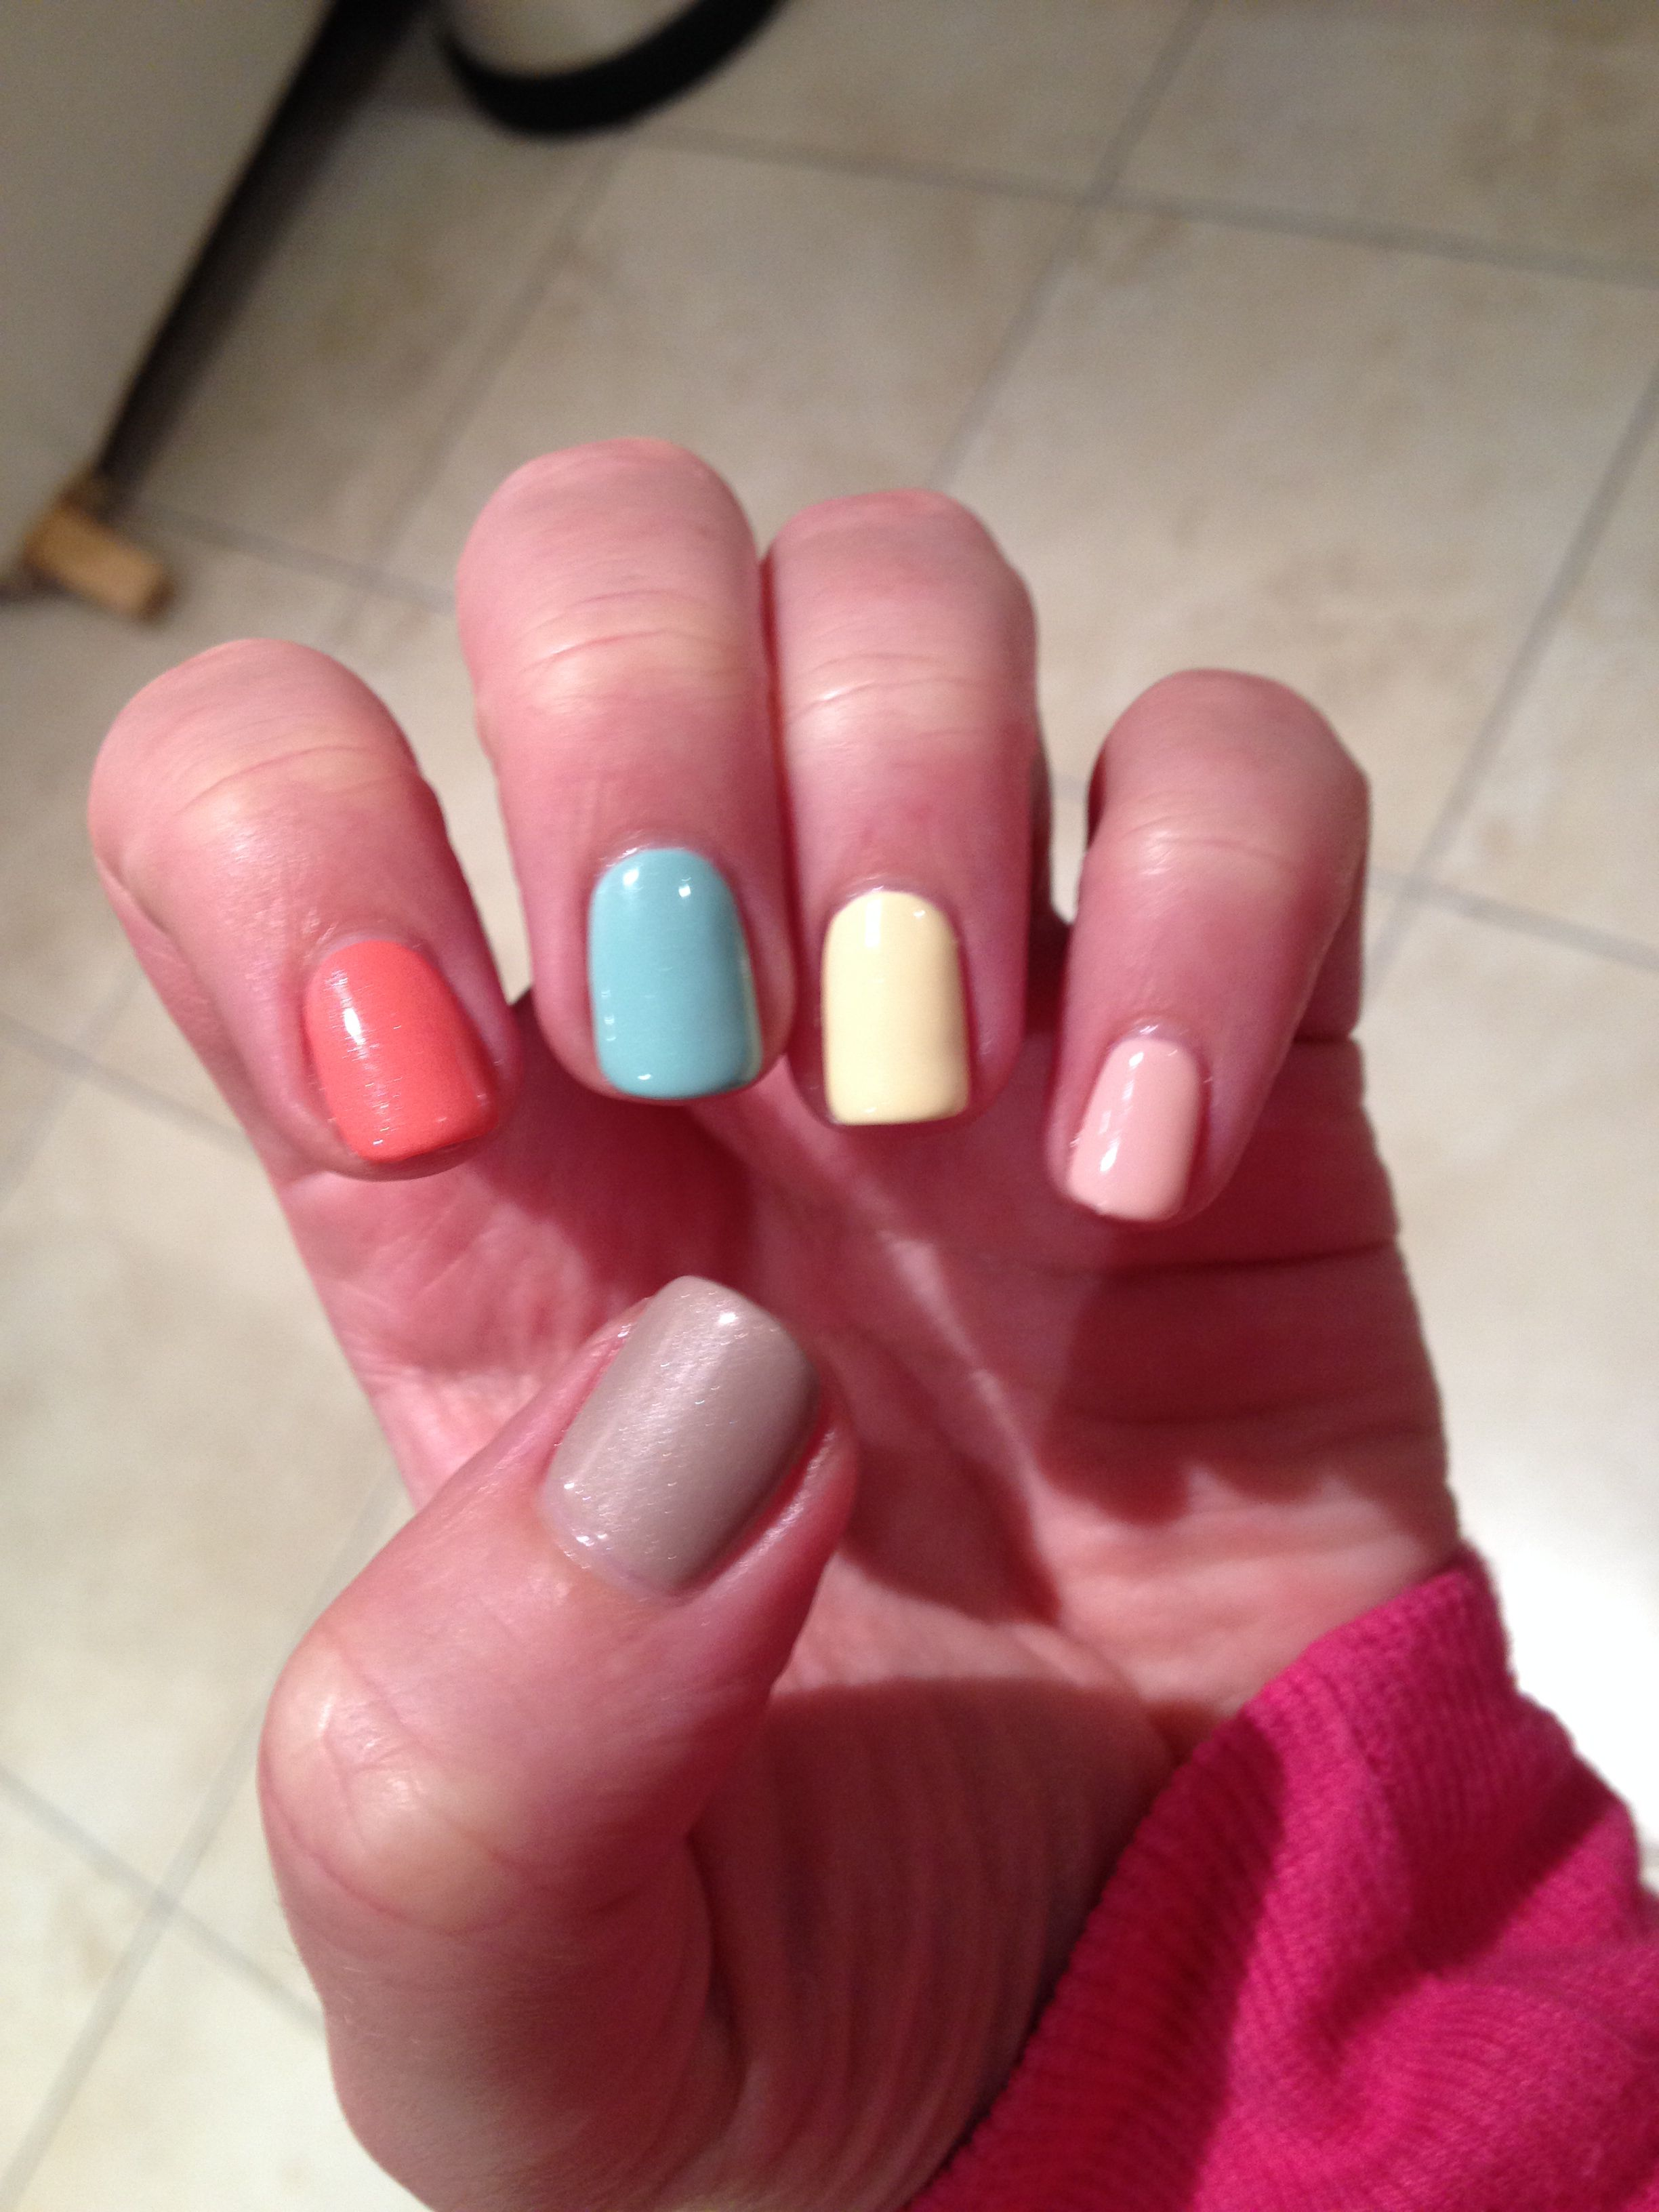 Artistic colour gloss in Snapdragon, Trouble, and I think